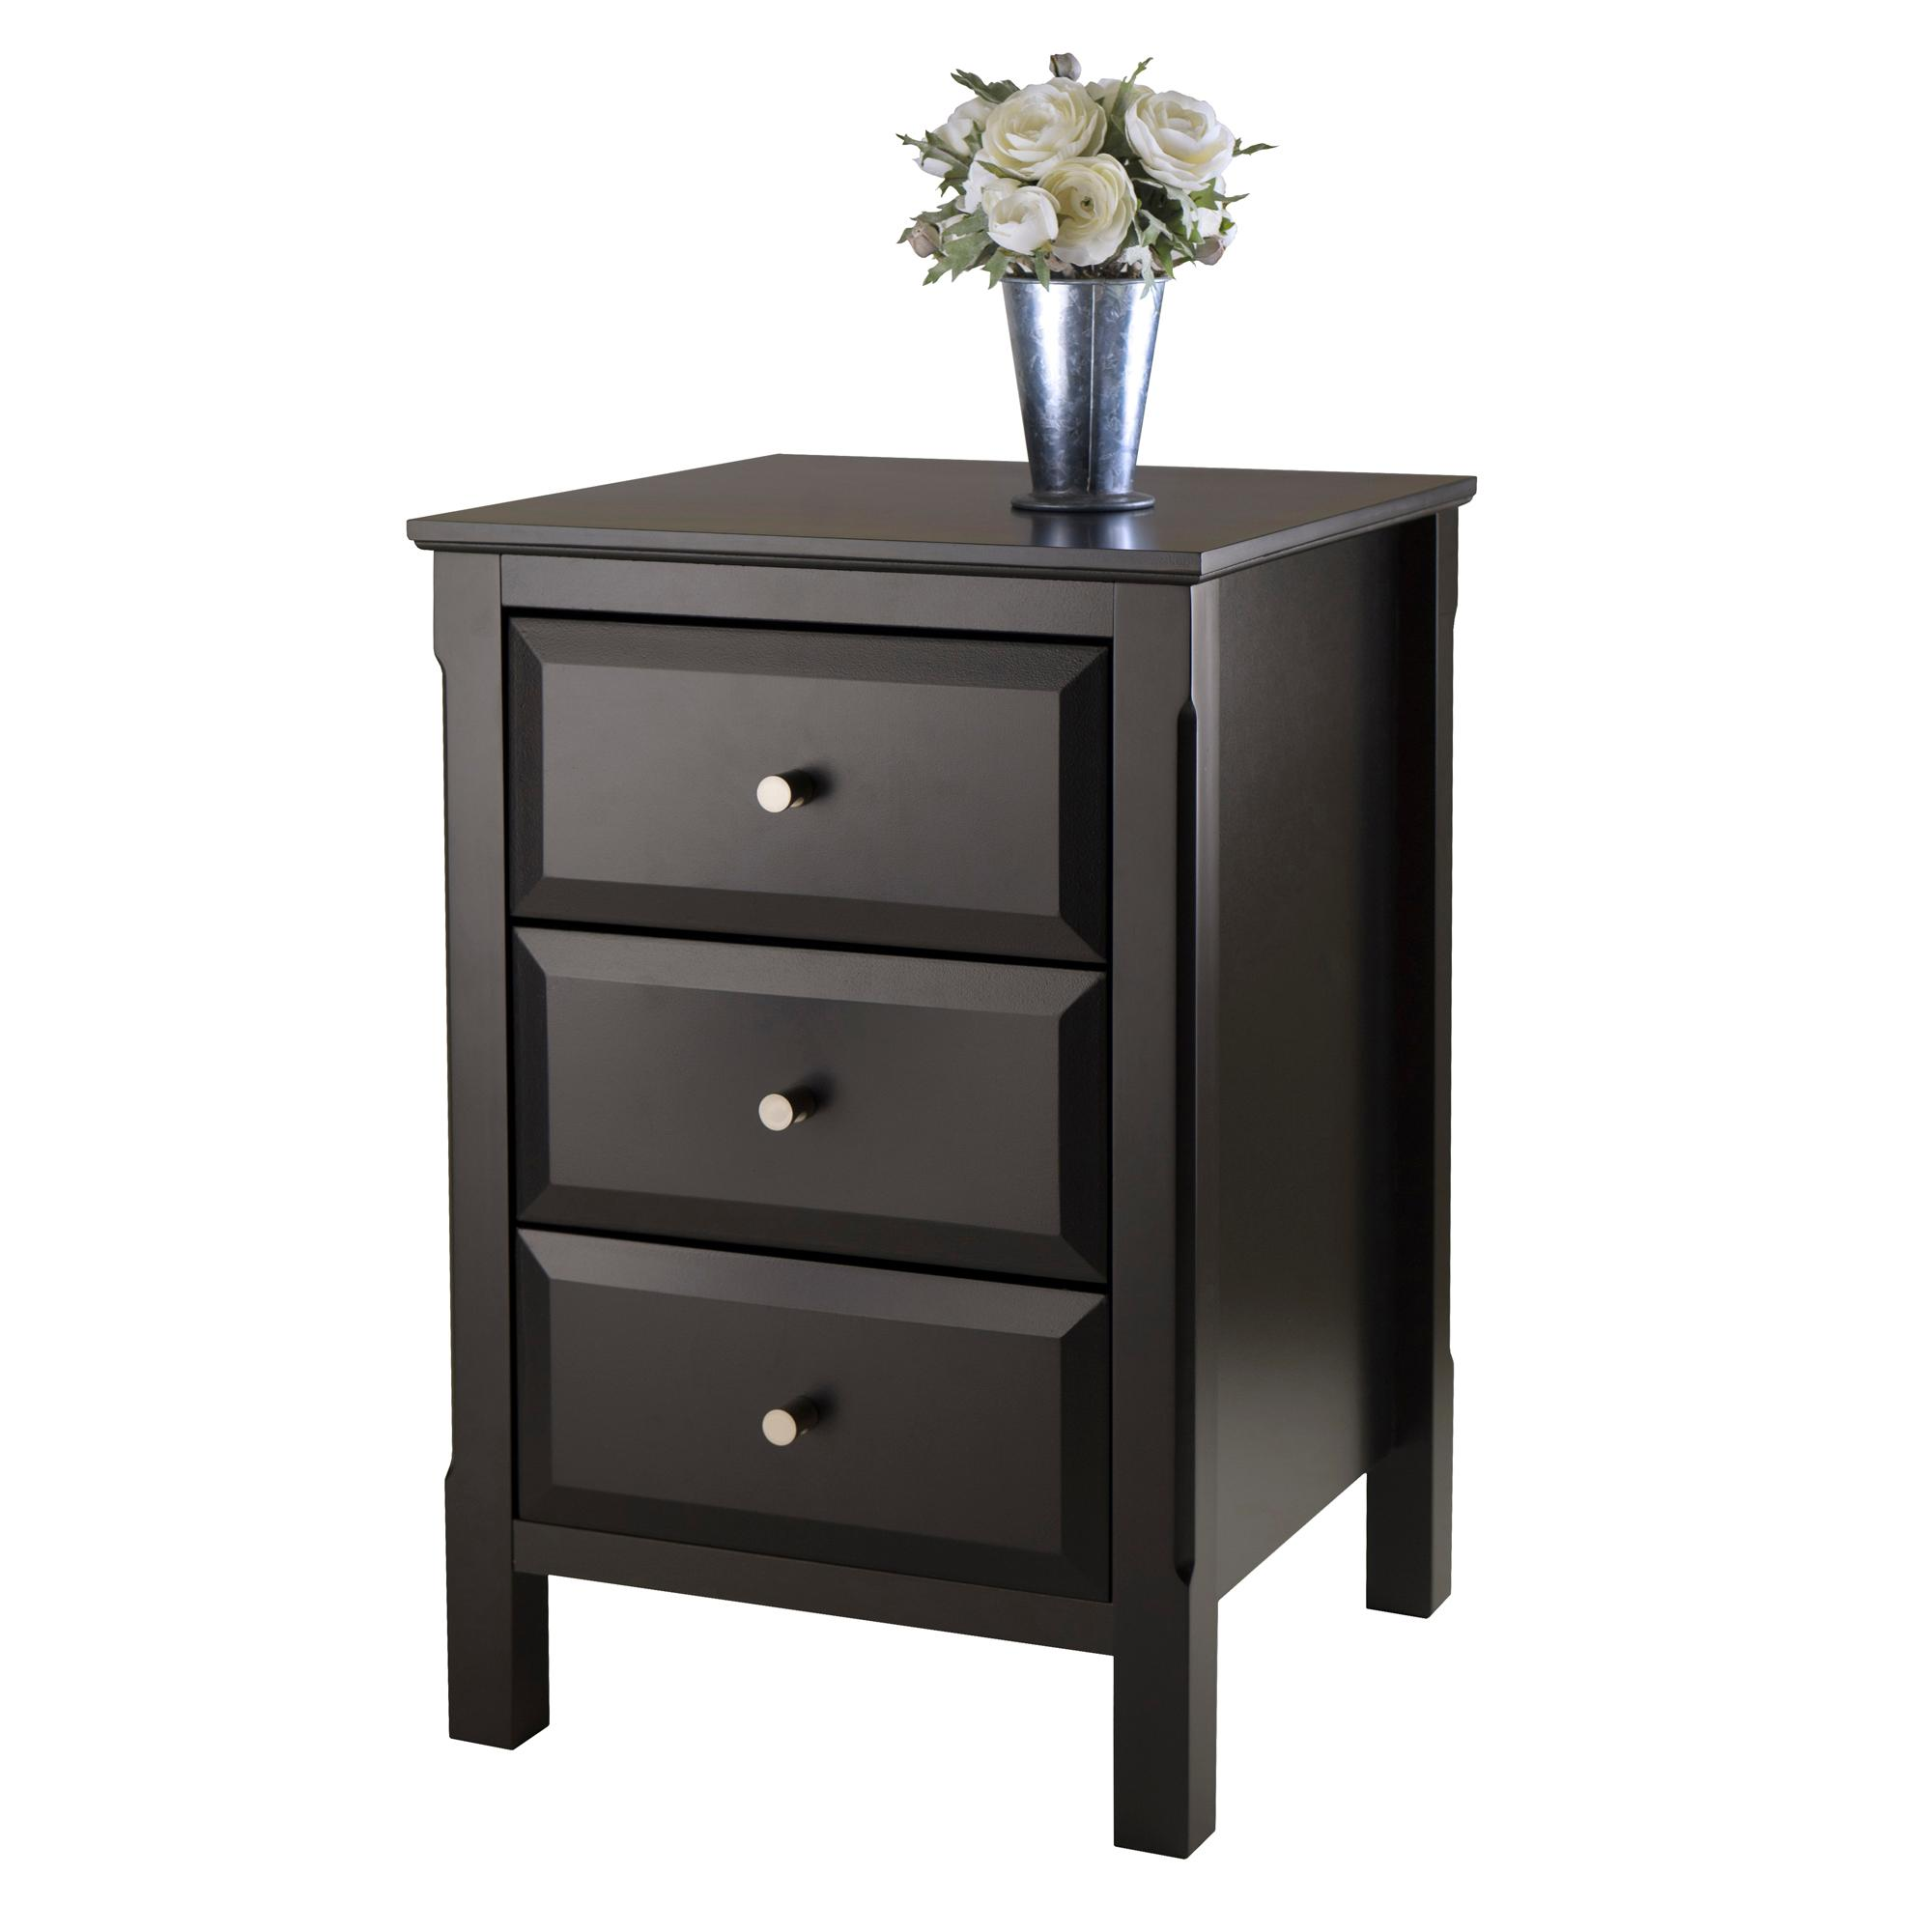 Kitchen Side Table: Amazon.com: Winsome 20315 Timmy Accent Table, Black